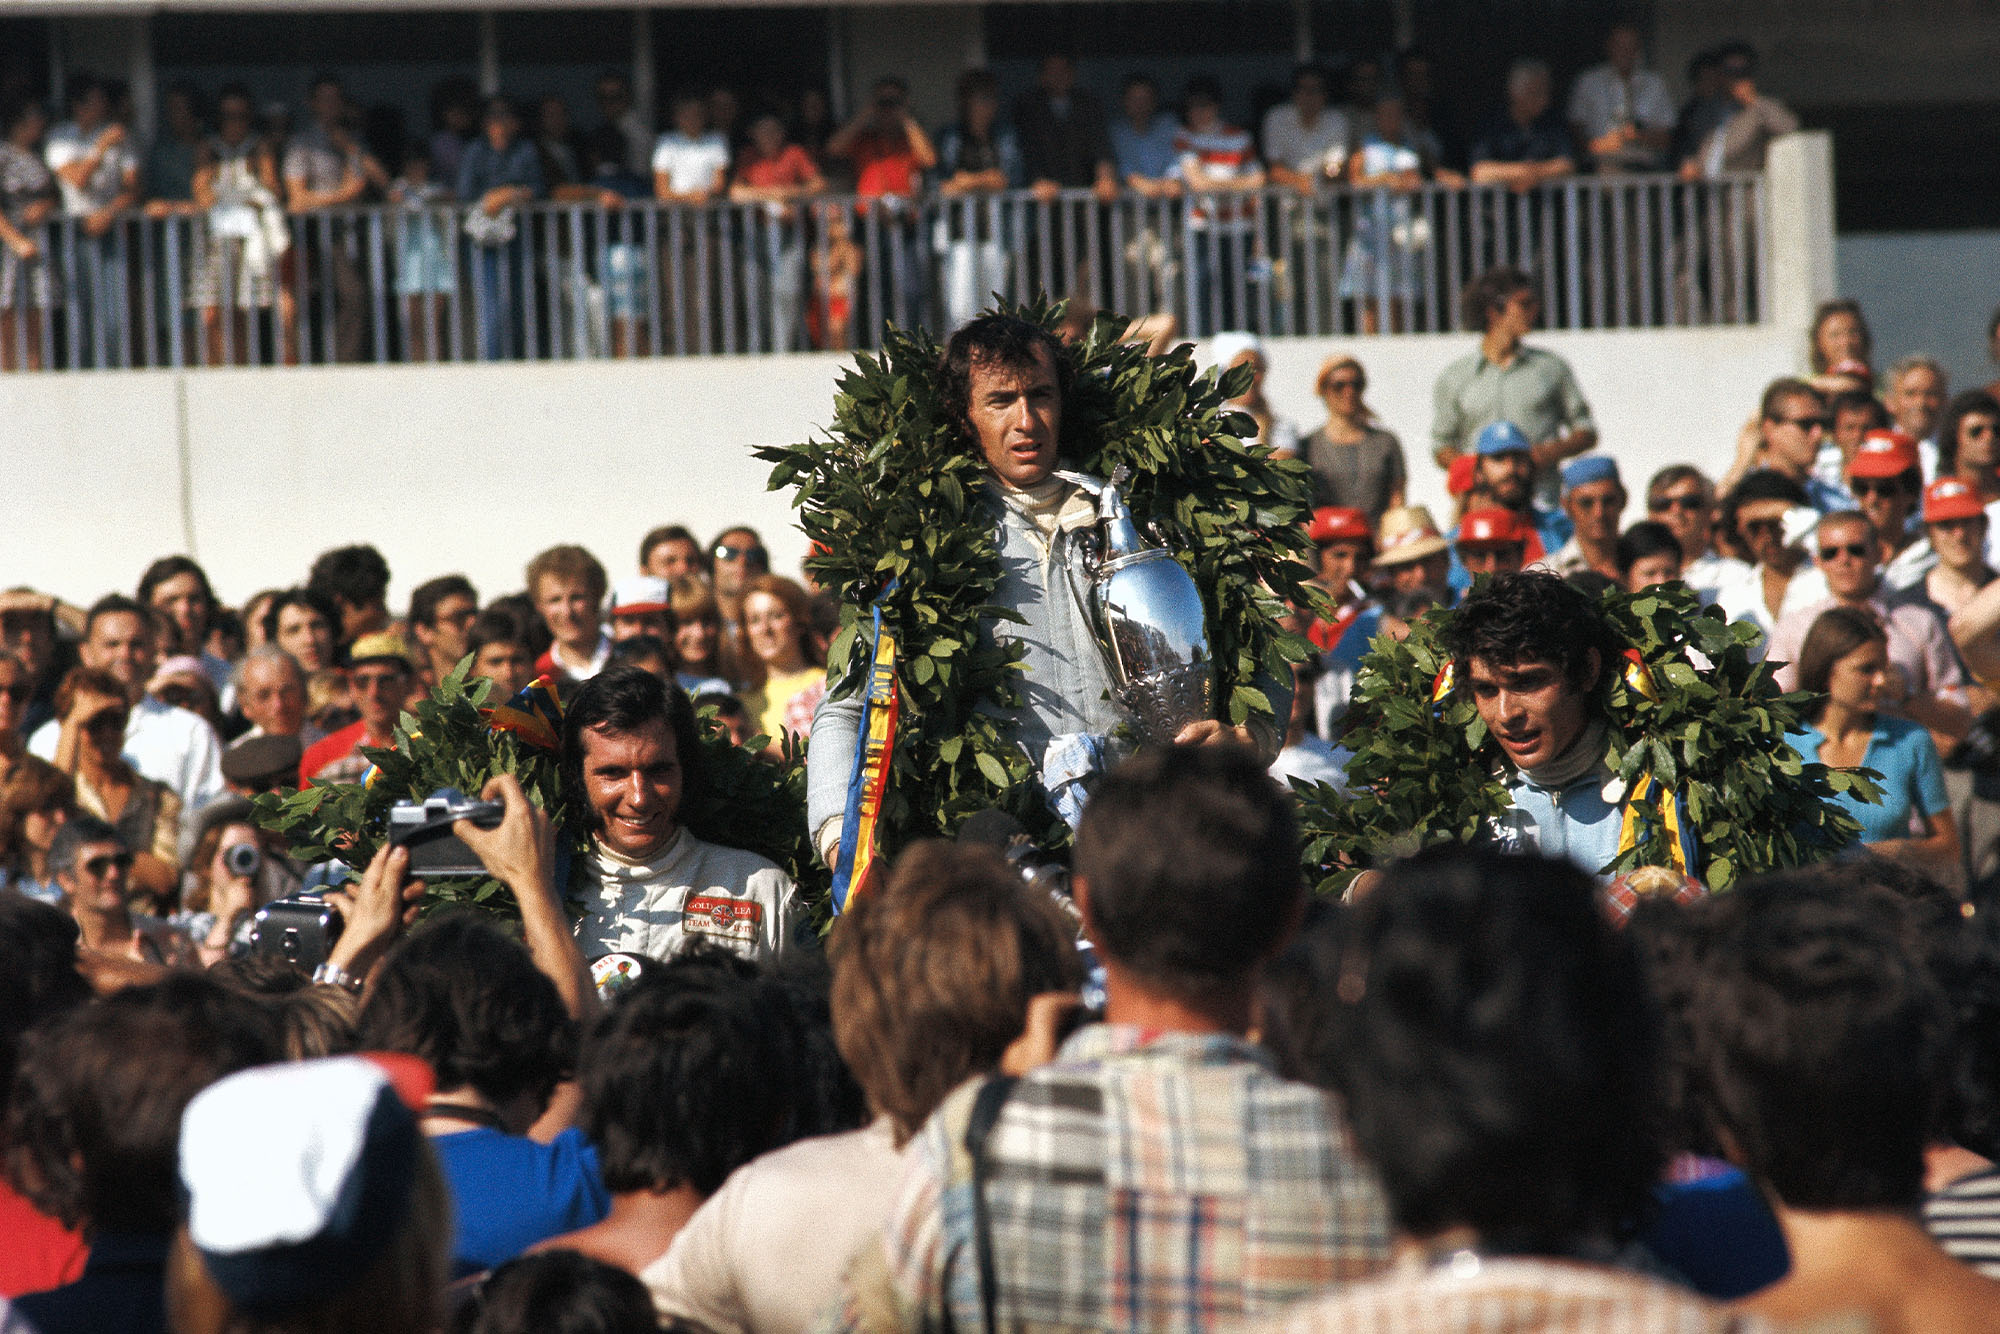 Jackie Stewart stands on the podium after winning the 1971 French Grand Prix.